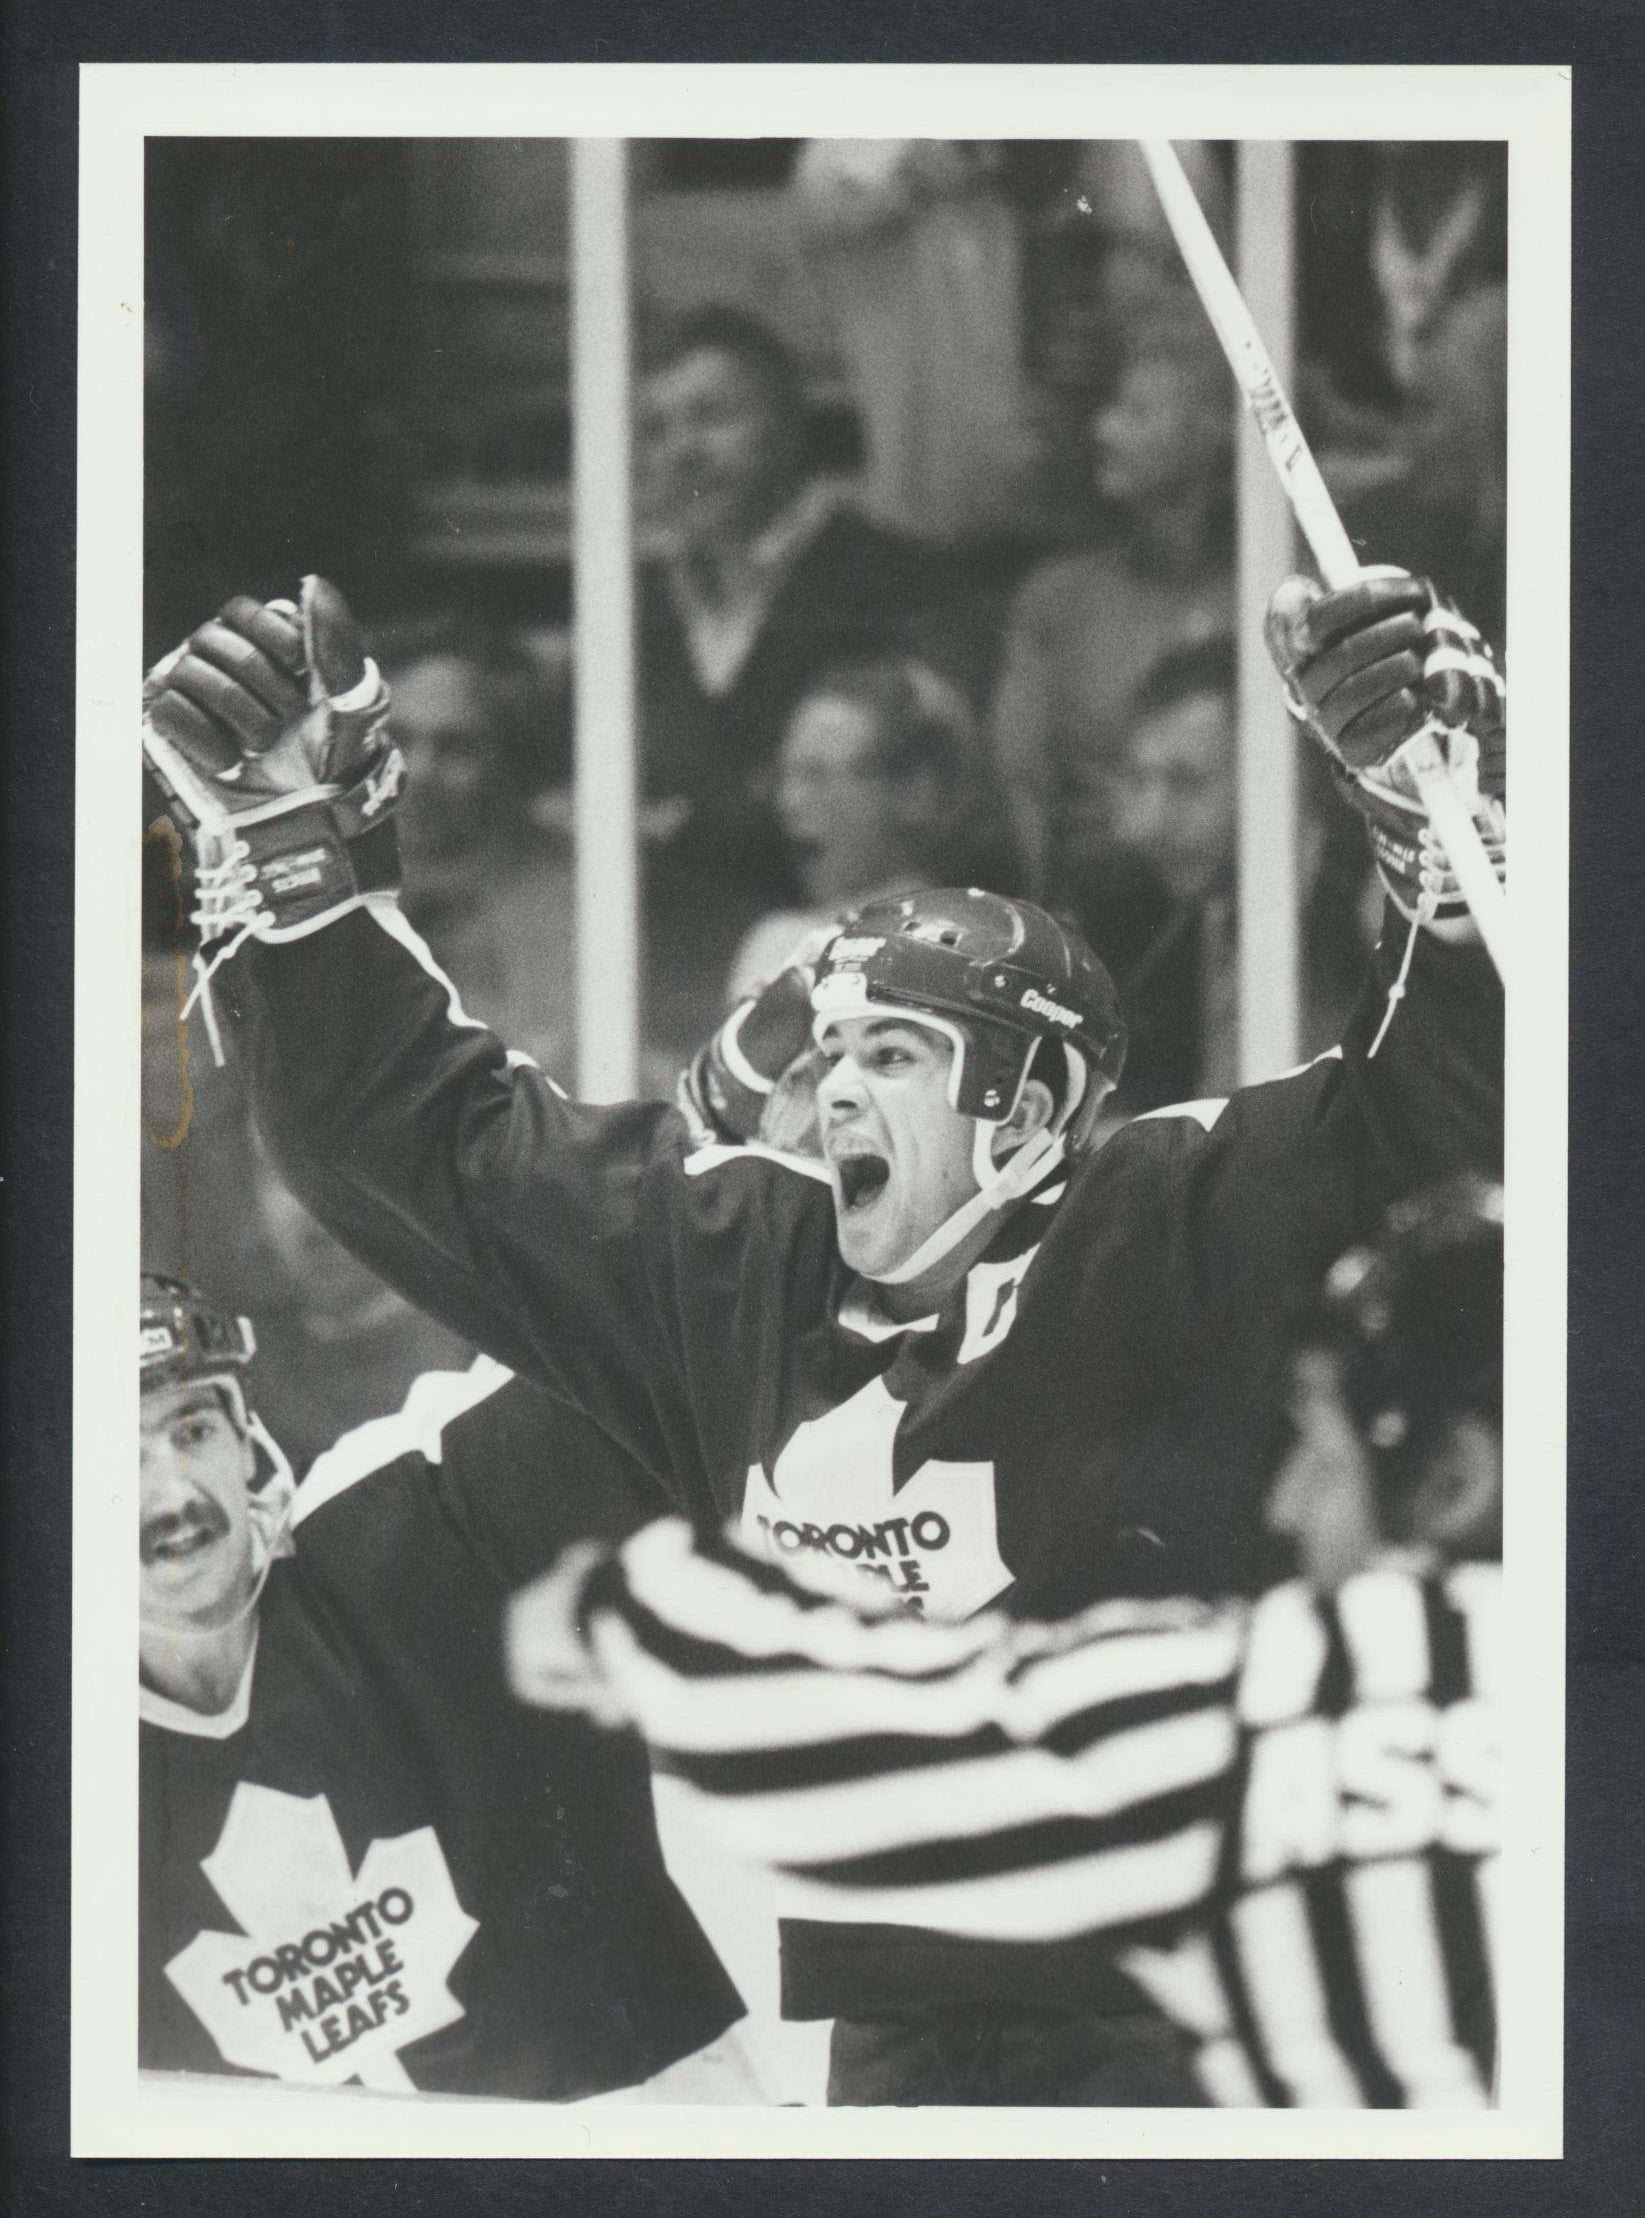 Original Rick Vaive Toronto Maple Leafs Press Photo 1984  Sporting News Collection  NHL Hockey Memorabilia